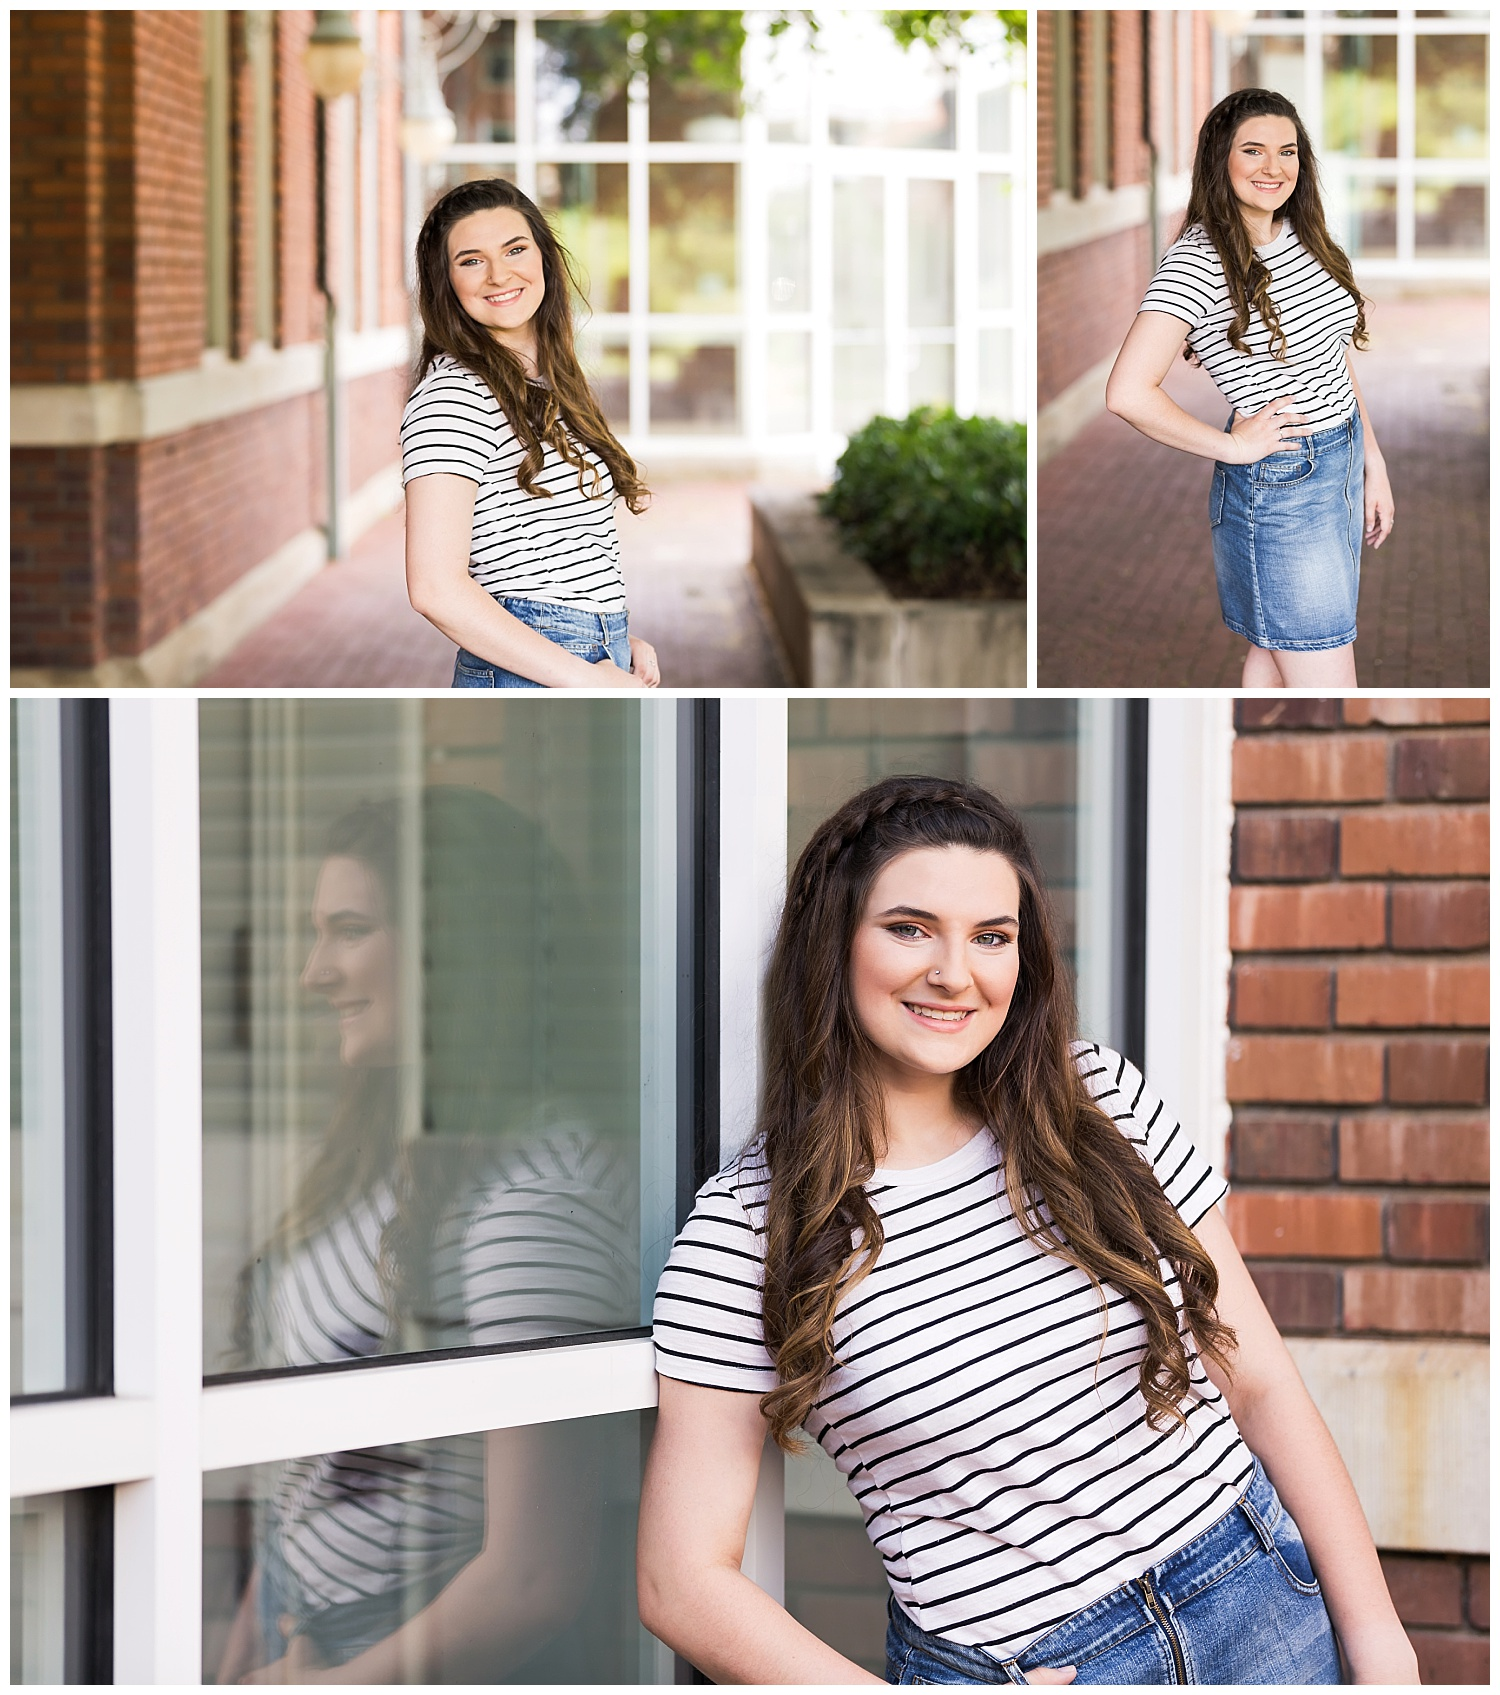 historic downtown opelika senior portraits lauren beesley photography